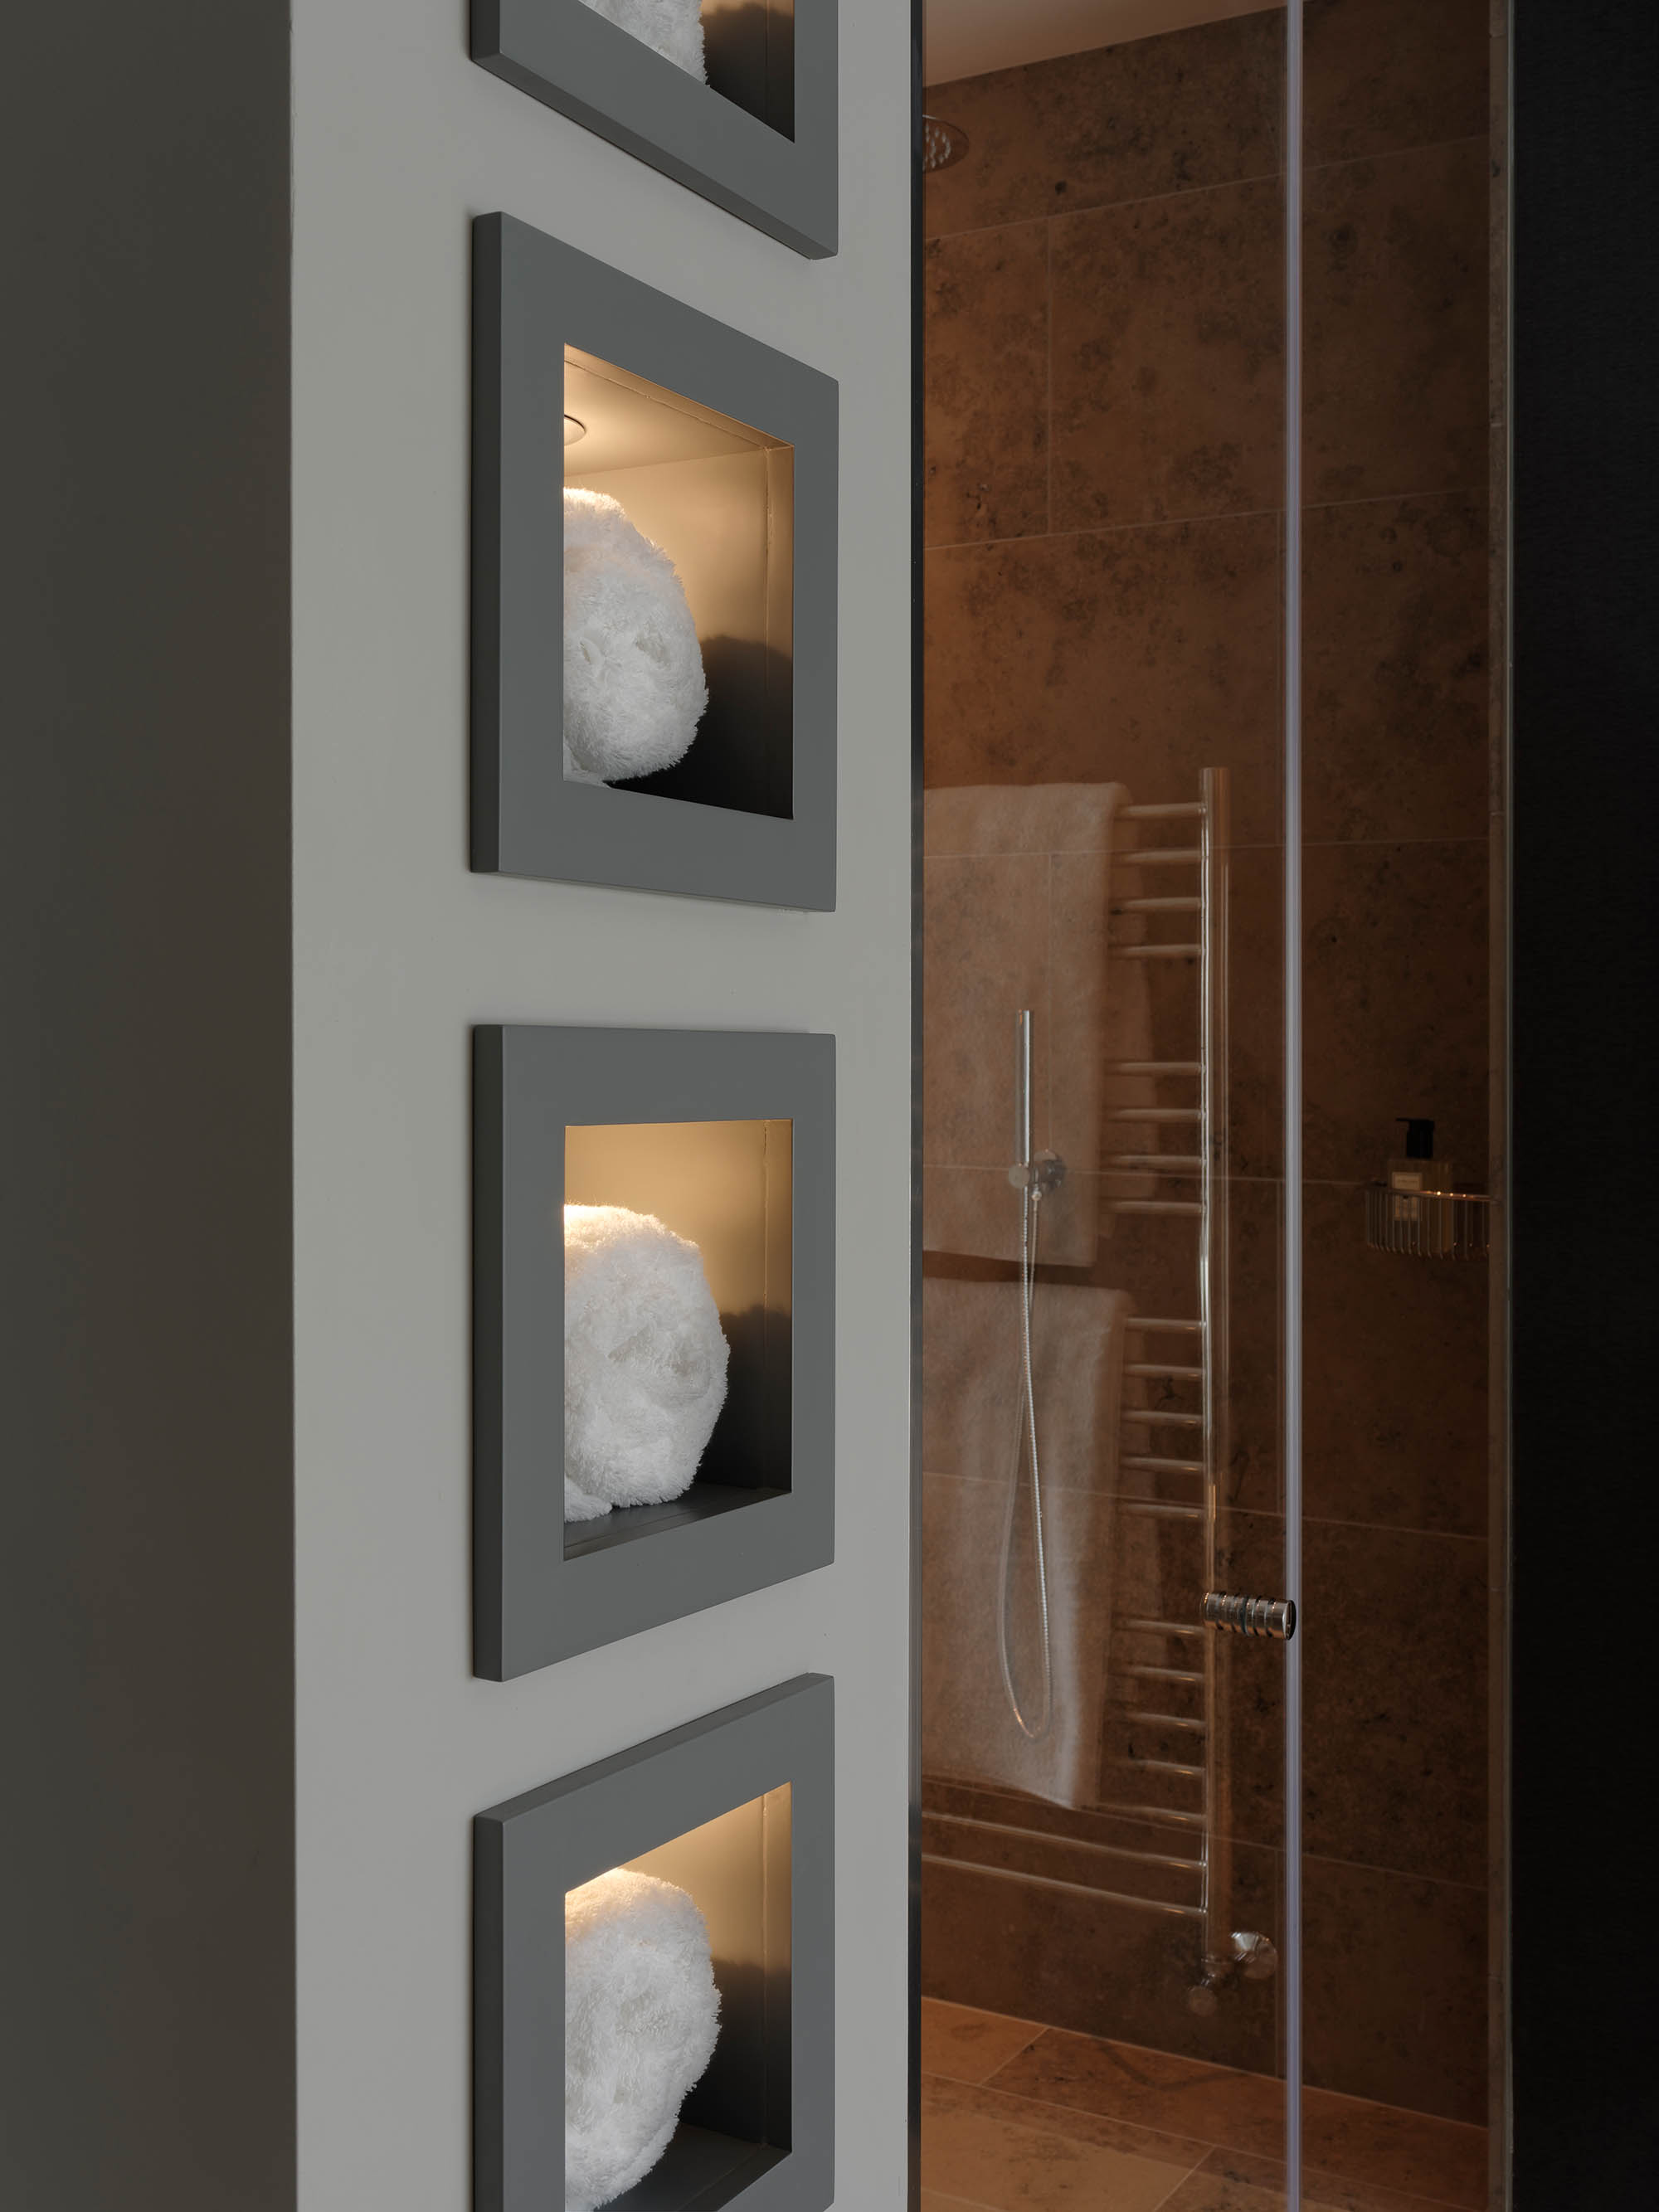 Bathroom / shower room design with towel shelves built into the wall